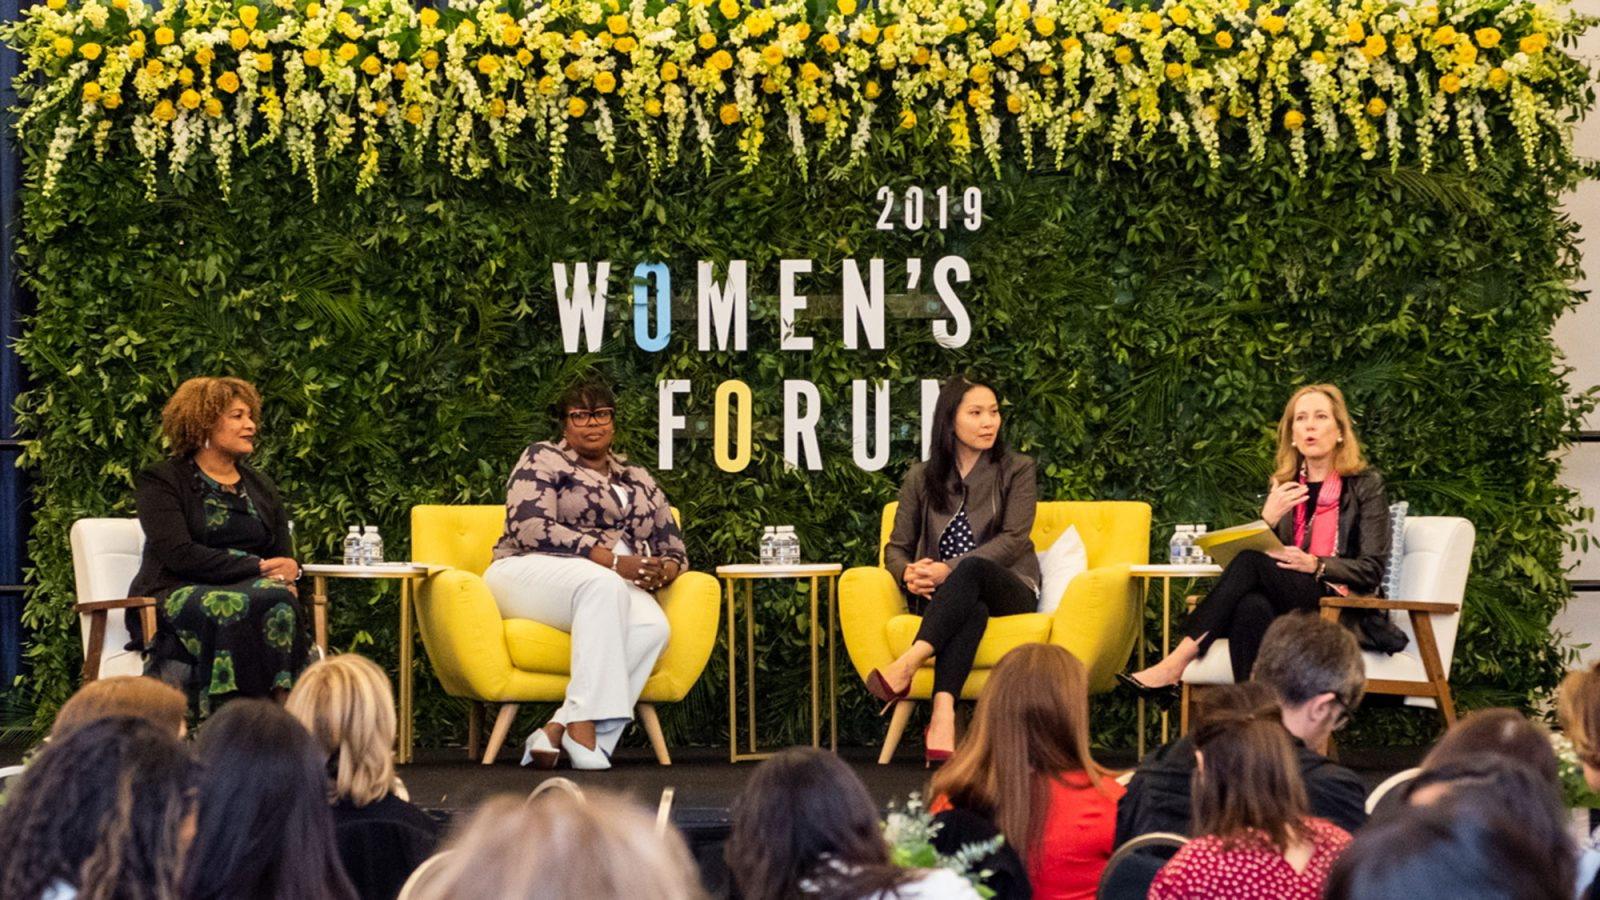 Fatima Goss Graves, Juliette Pryor, Nicolina O'Rorke and Hillary Sale talk on stage with 2019 Women's Forum in background.